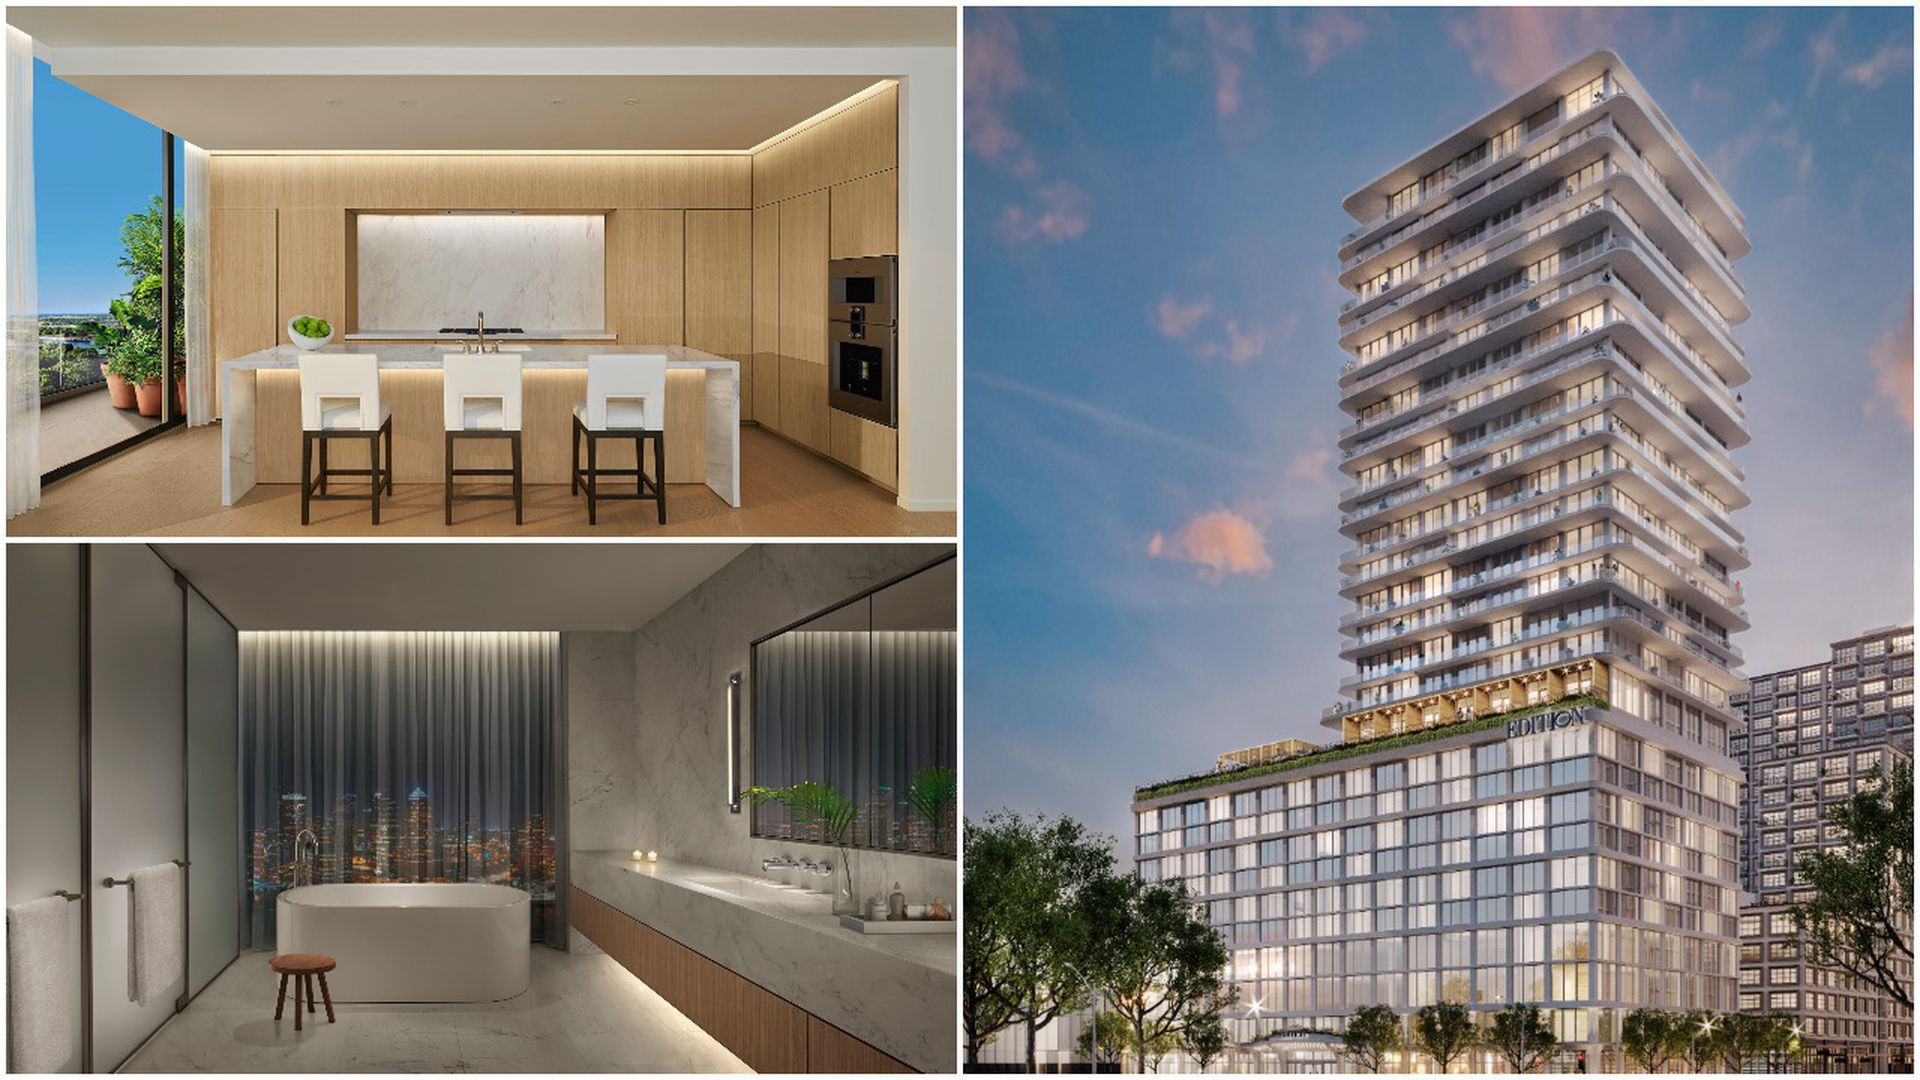 Pictures of the design for the first 5-star hotel in Tampa